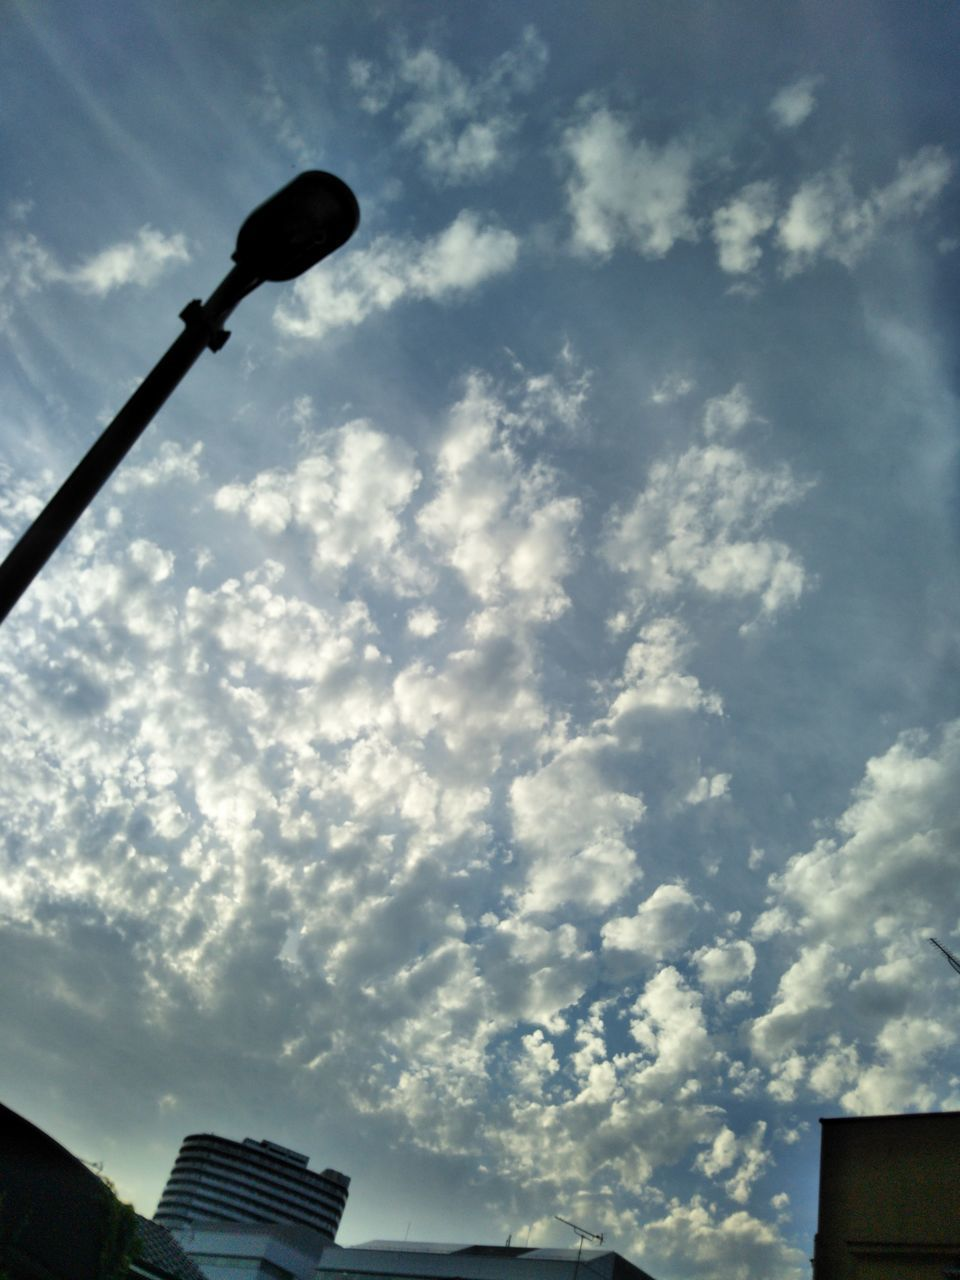 low angle view, sky, street light, cloud - sky, no people, outdoors, architecture, day